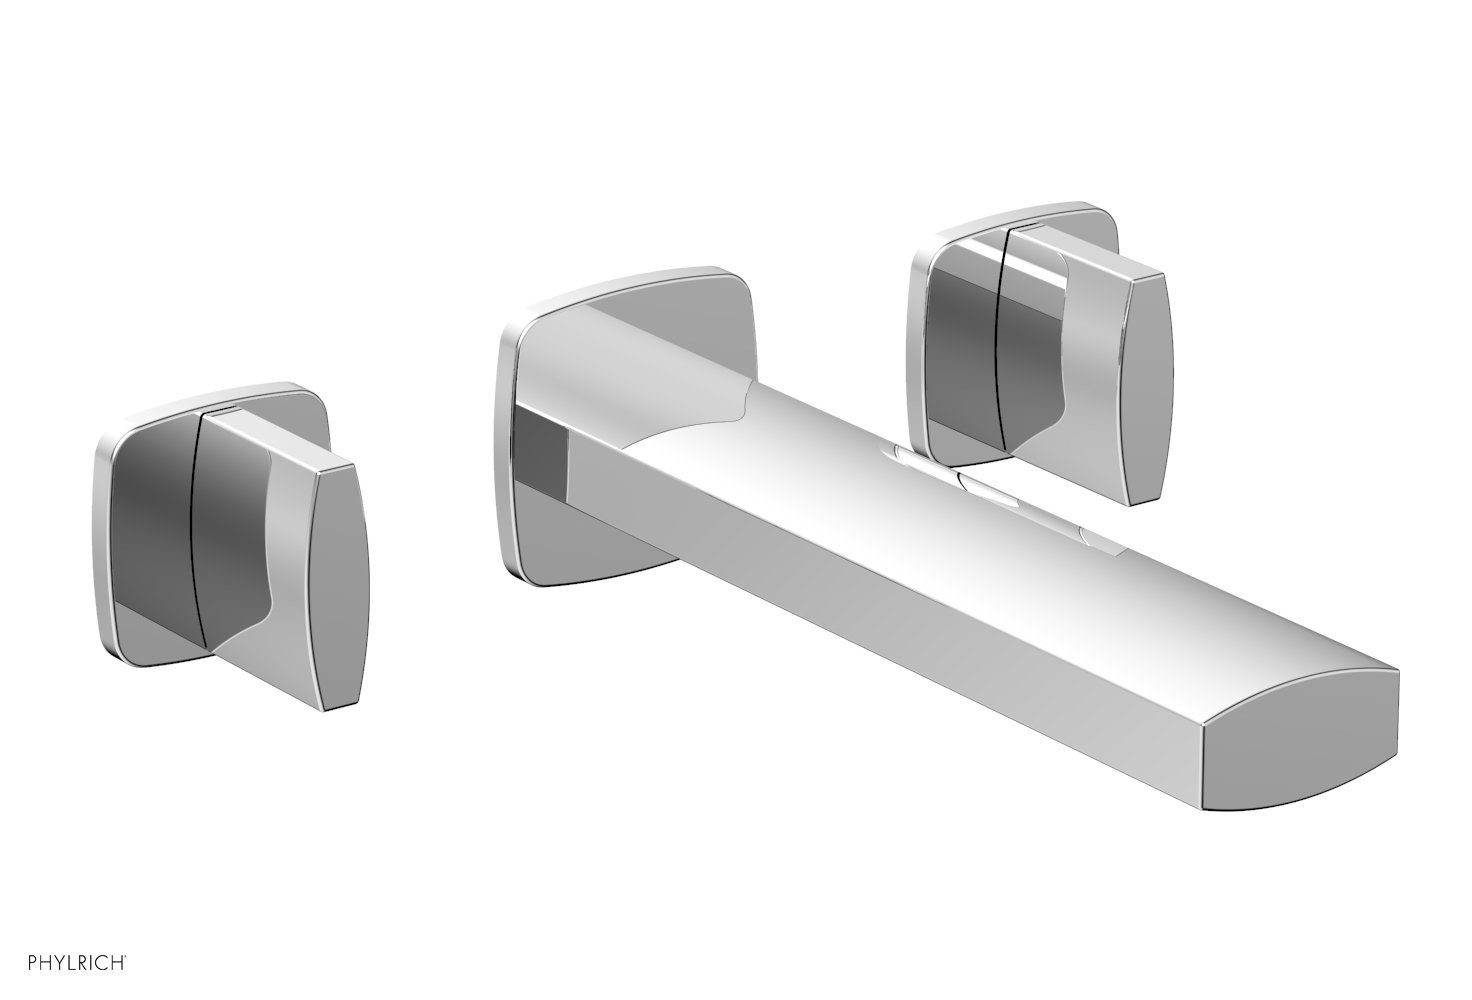 Phylrich 181-11-026 RADI Wall Lavatory Set - Blade Handles - Polished Chrome